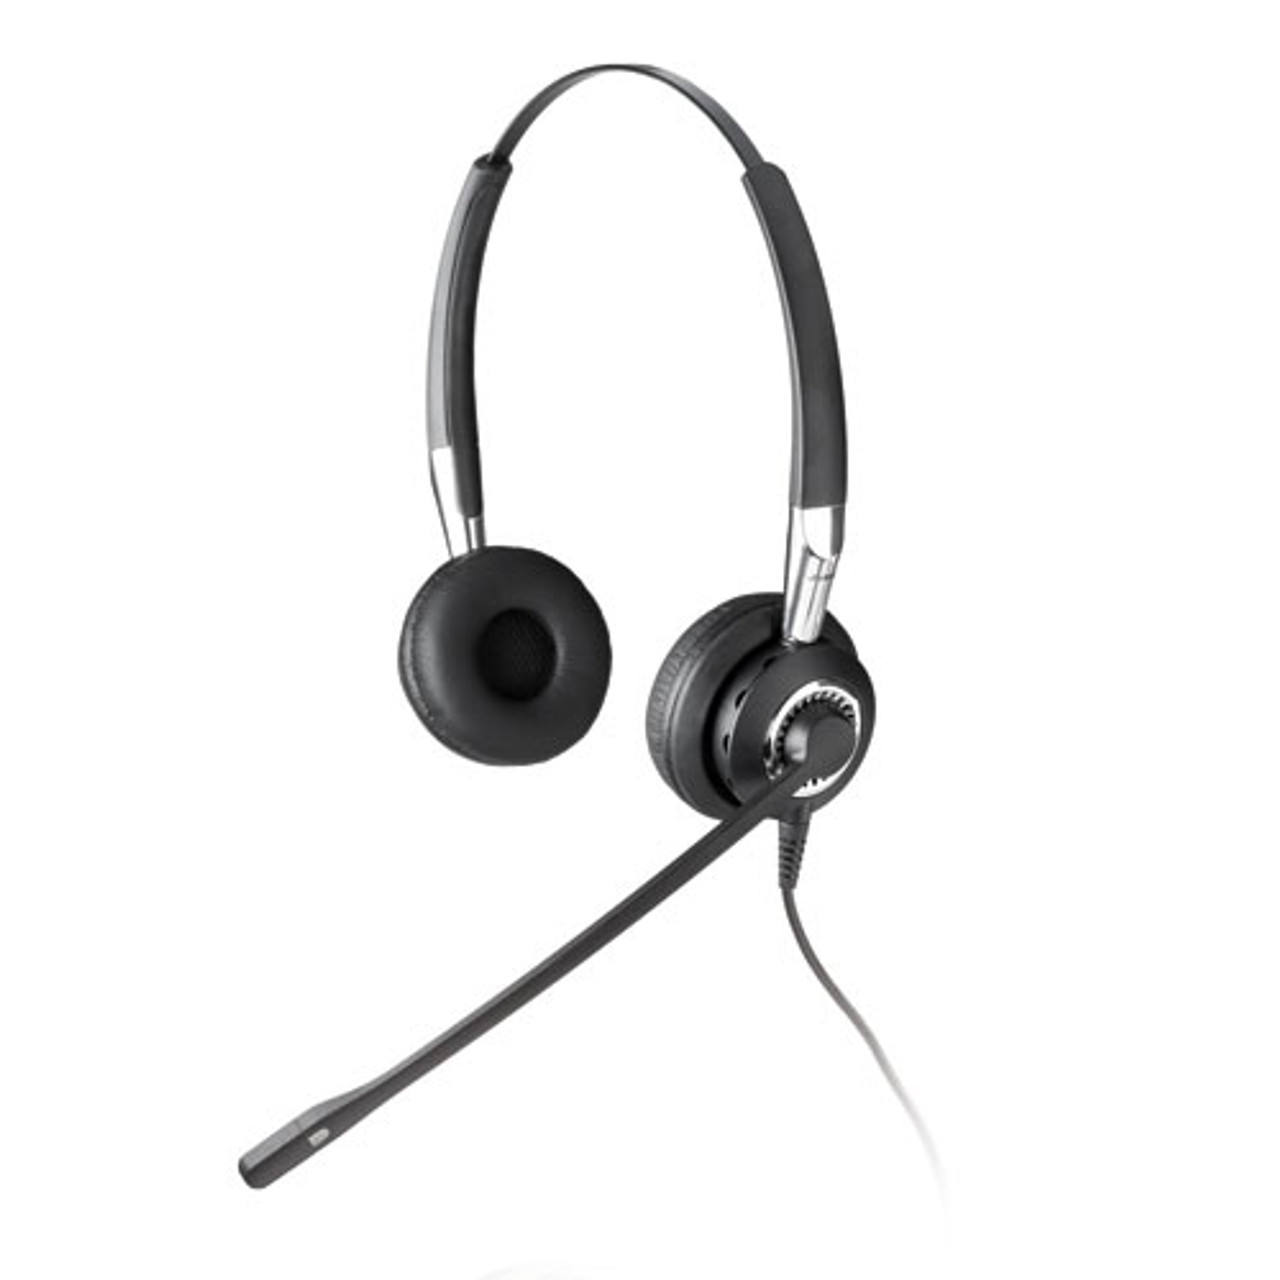 Jabra Biz 2400 Stereo Headset With Usb Connector 2499 829 105